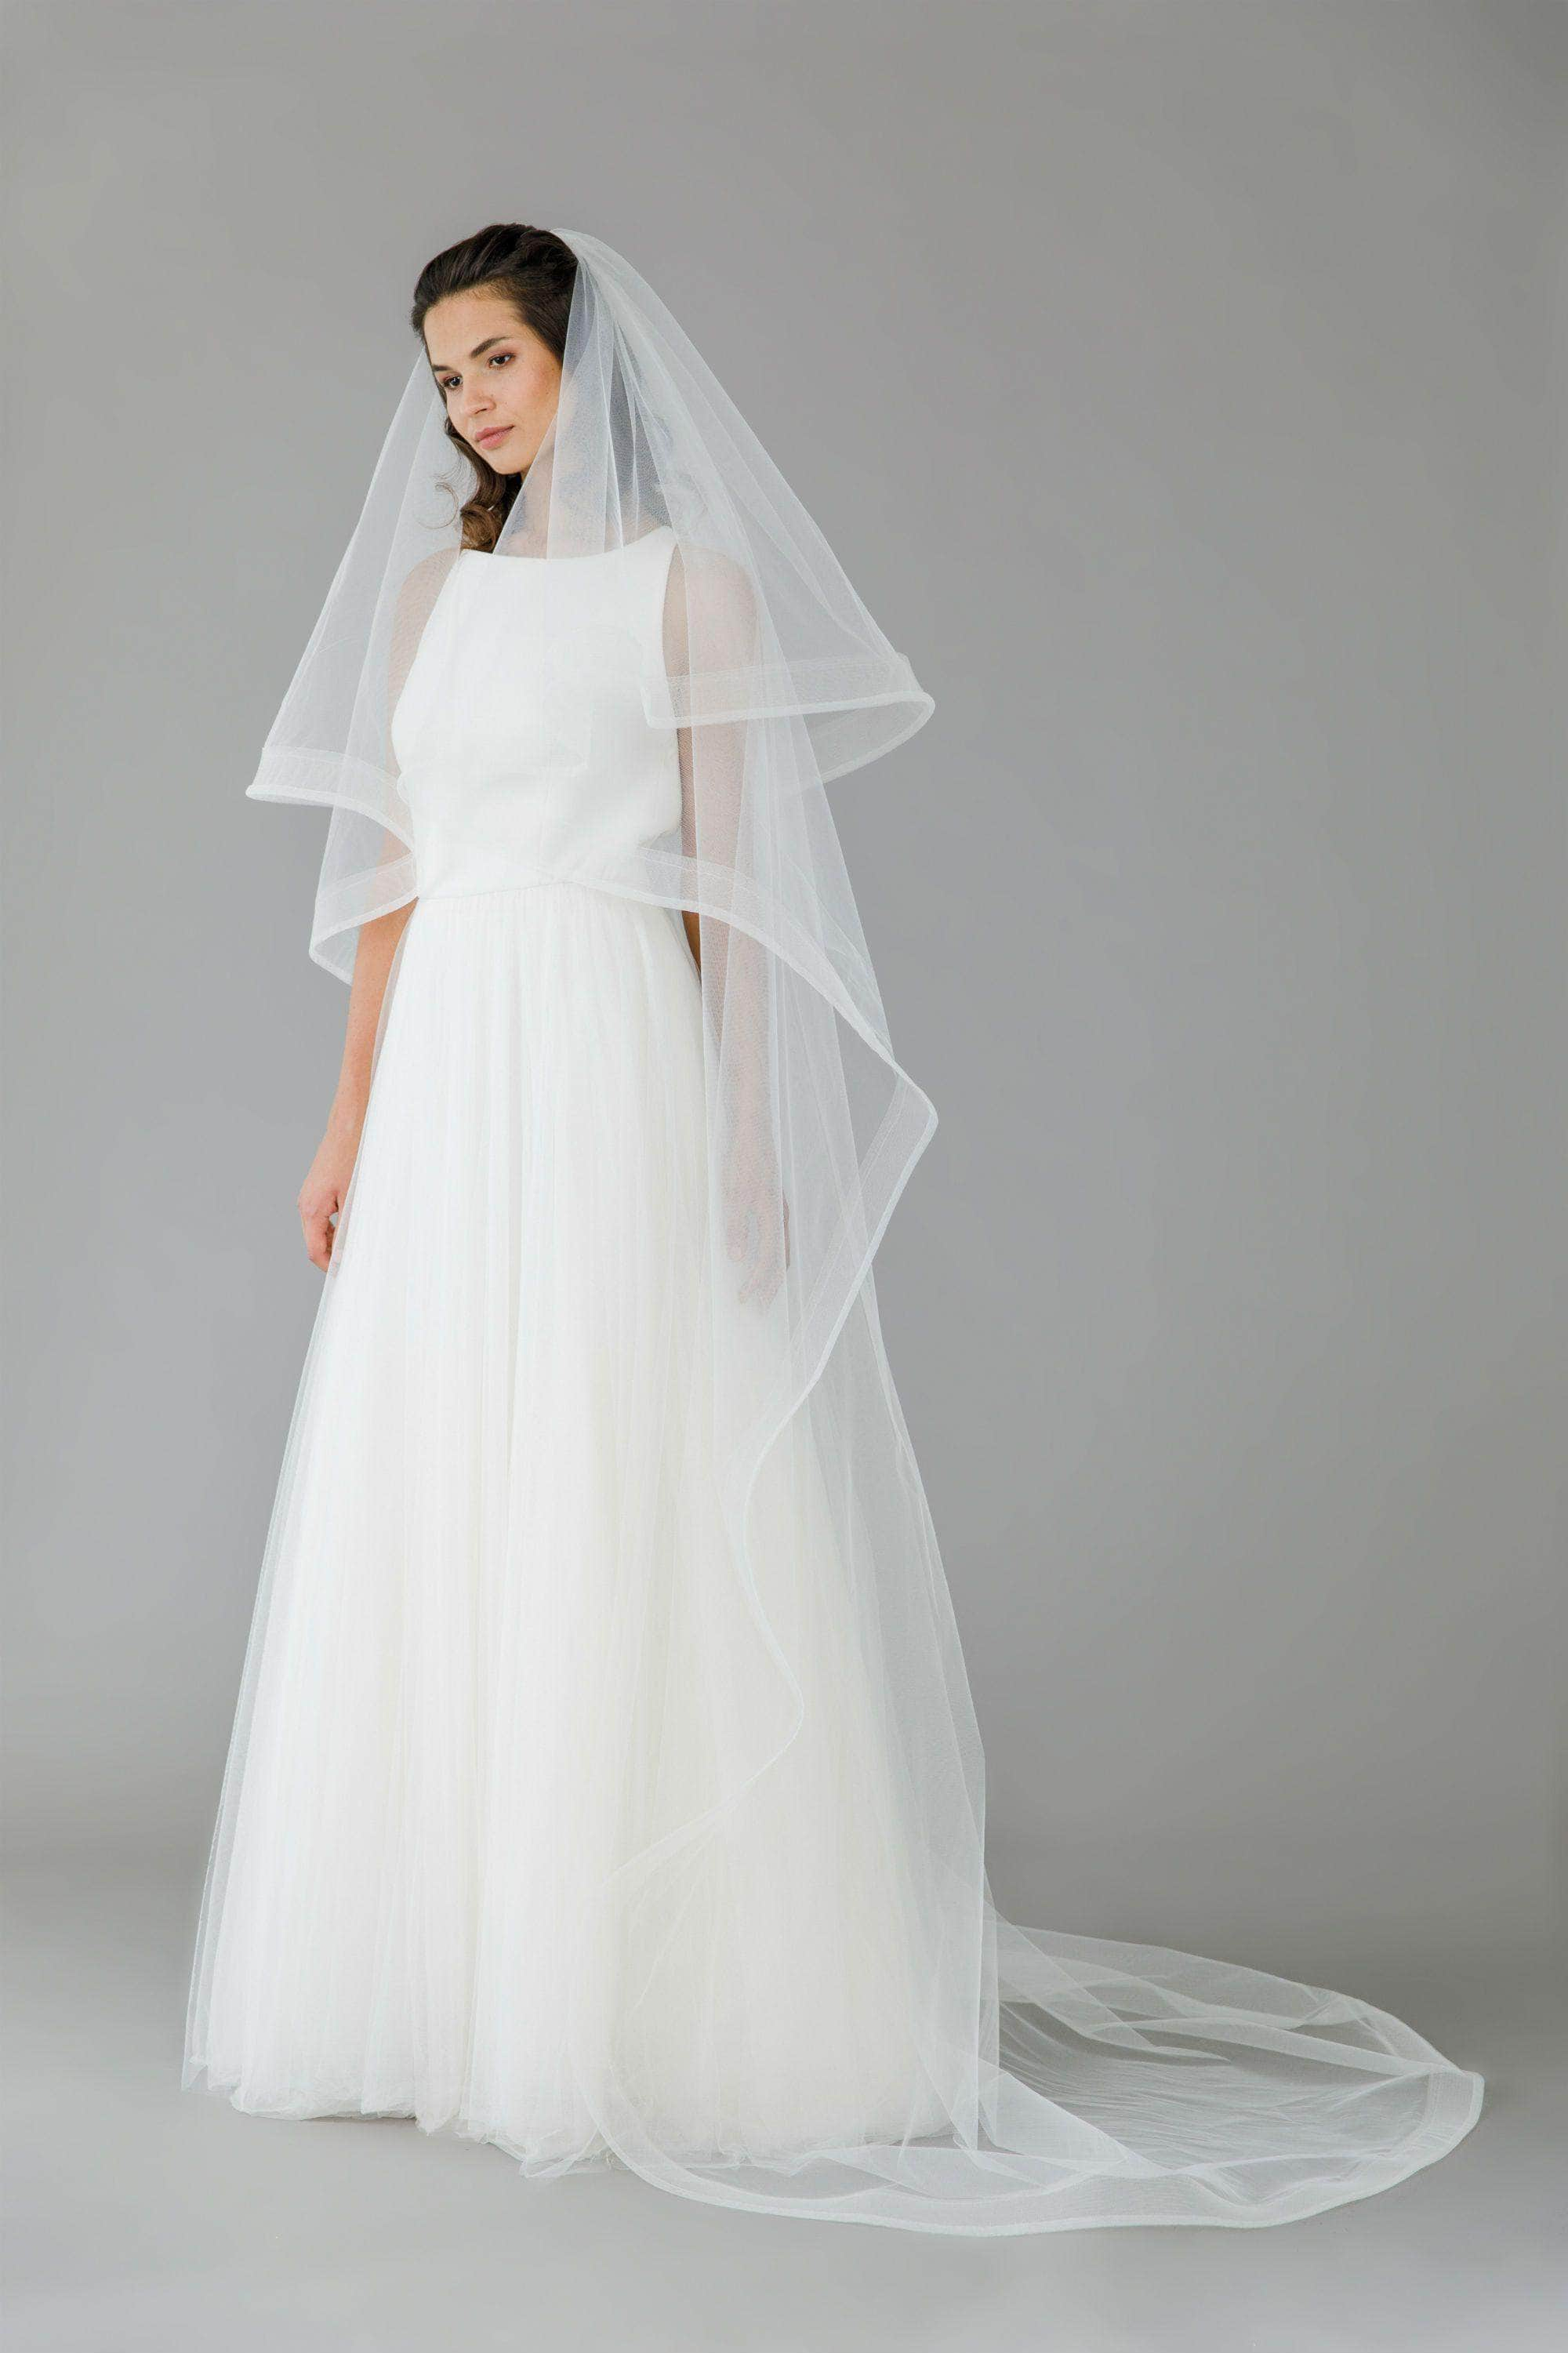 https://www.brittenweddings.com/collections/wedding-veils/horsehair-edge